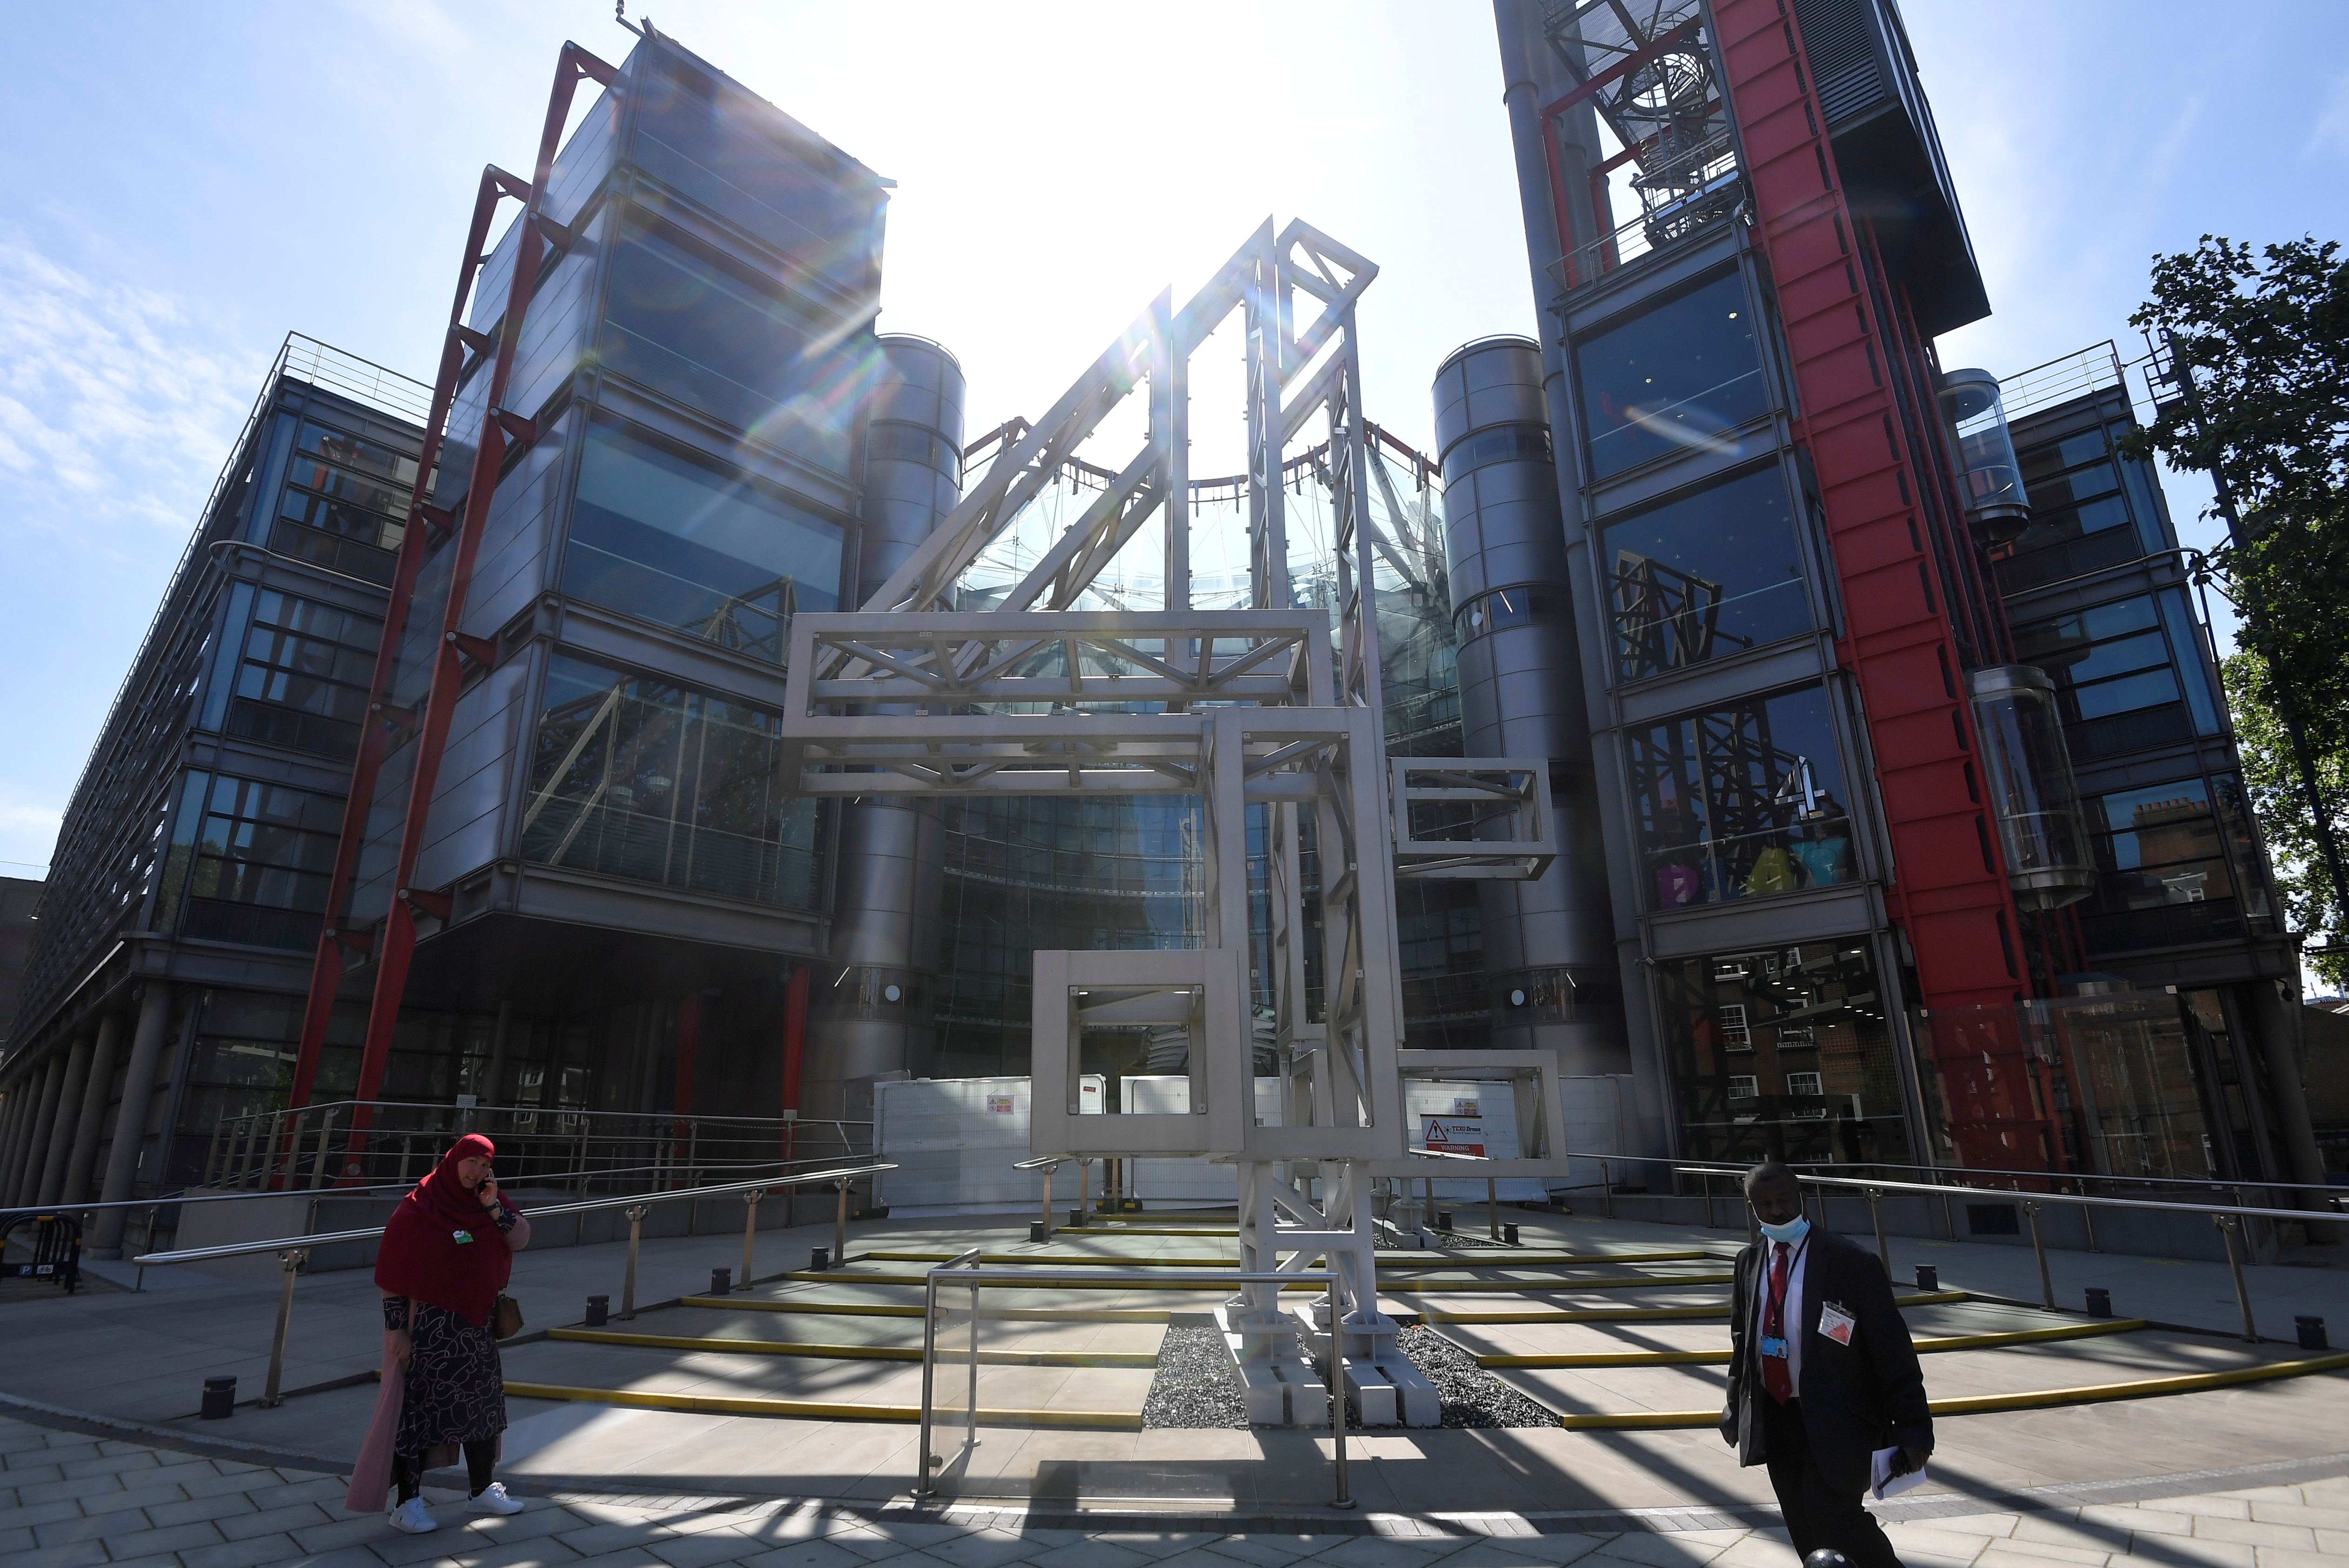 People walk past the Channel 4 television channel offices in London, Britain, June 23, 2021. REUTERS/Toby Melville/File Photo